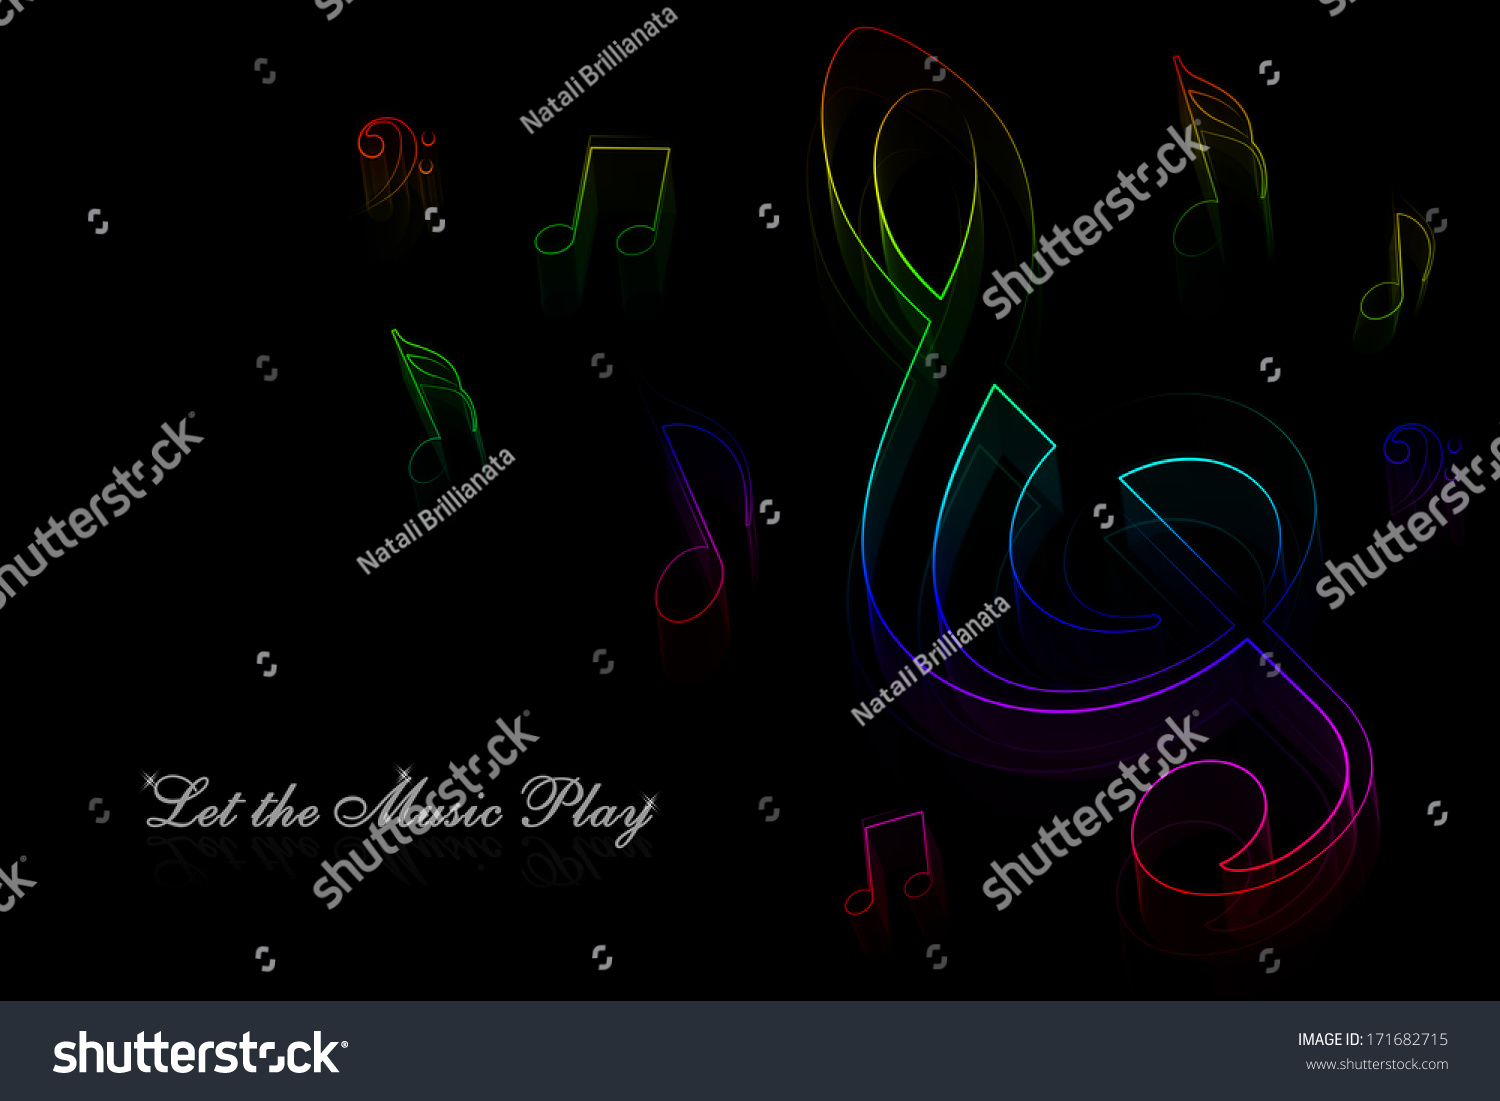 Neon Music Notes Background: Neon Music Notes On A Black Background Stock Photo